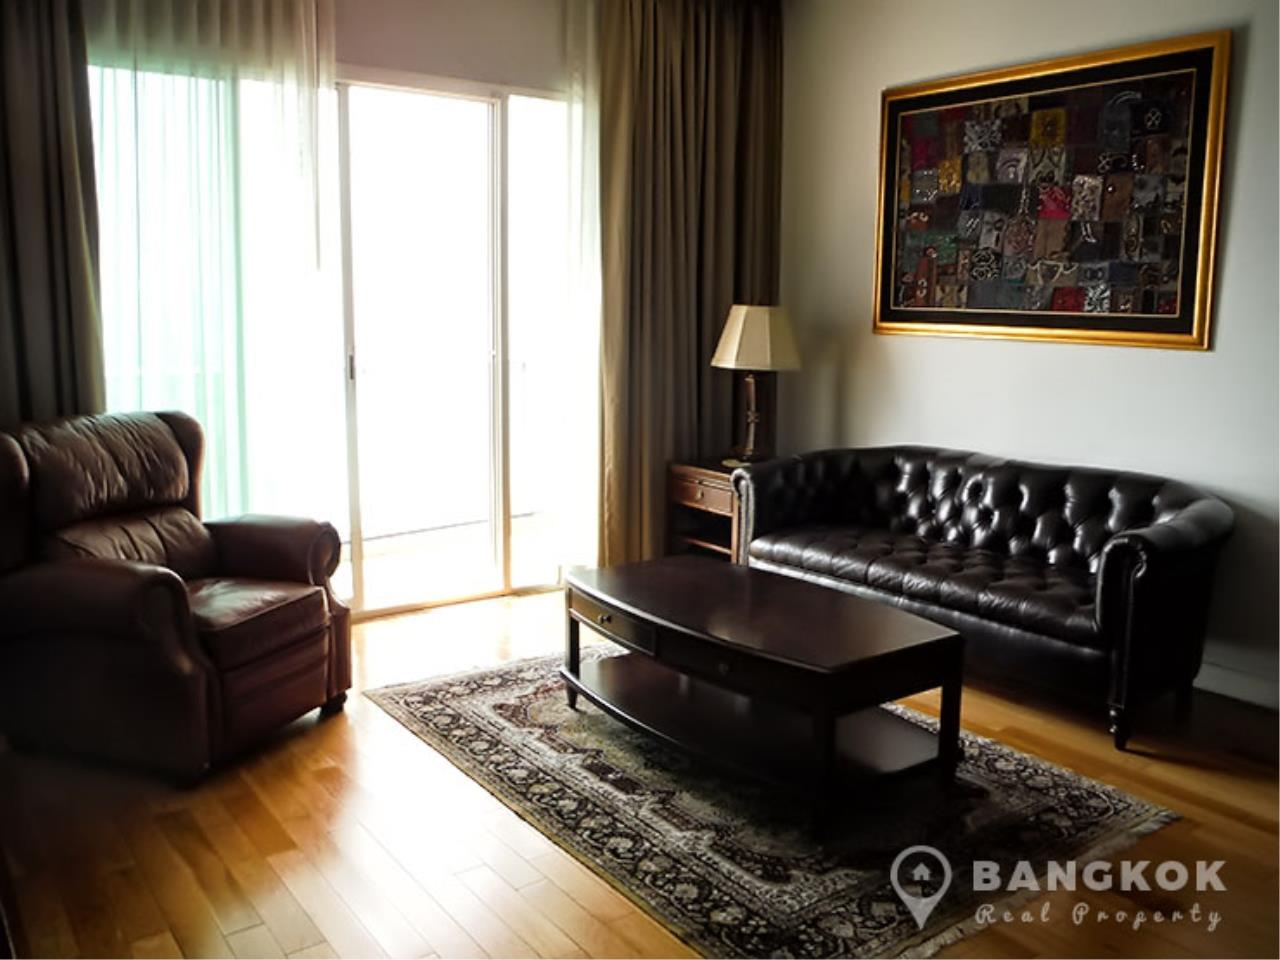 Bangkok Real Property Agency's Millennium Residence | Spacious Modern 3 Bed 3 Bath near Asoke 6